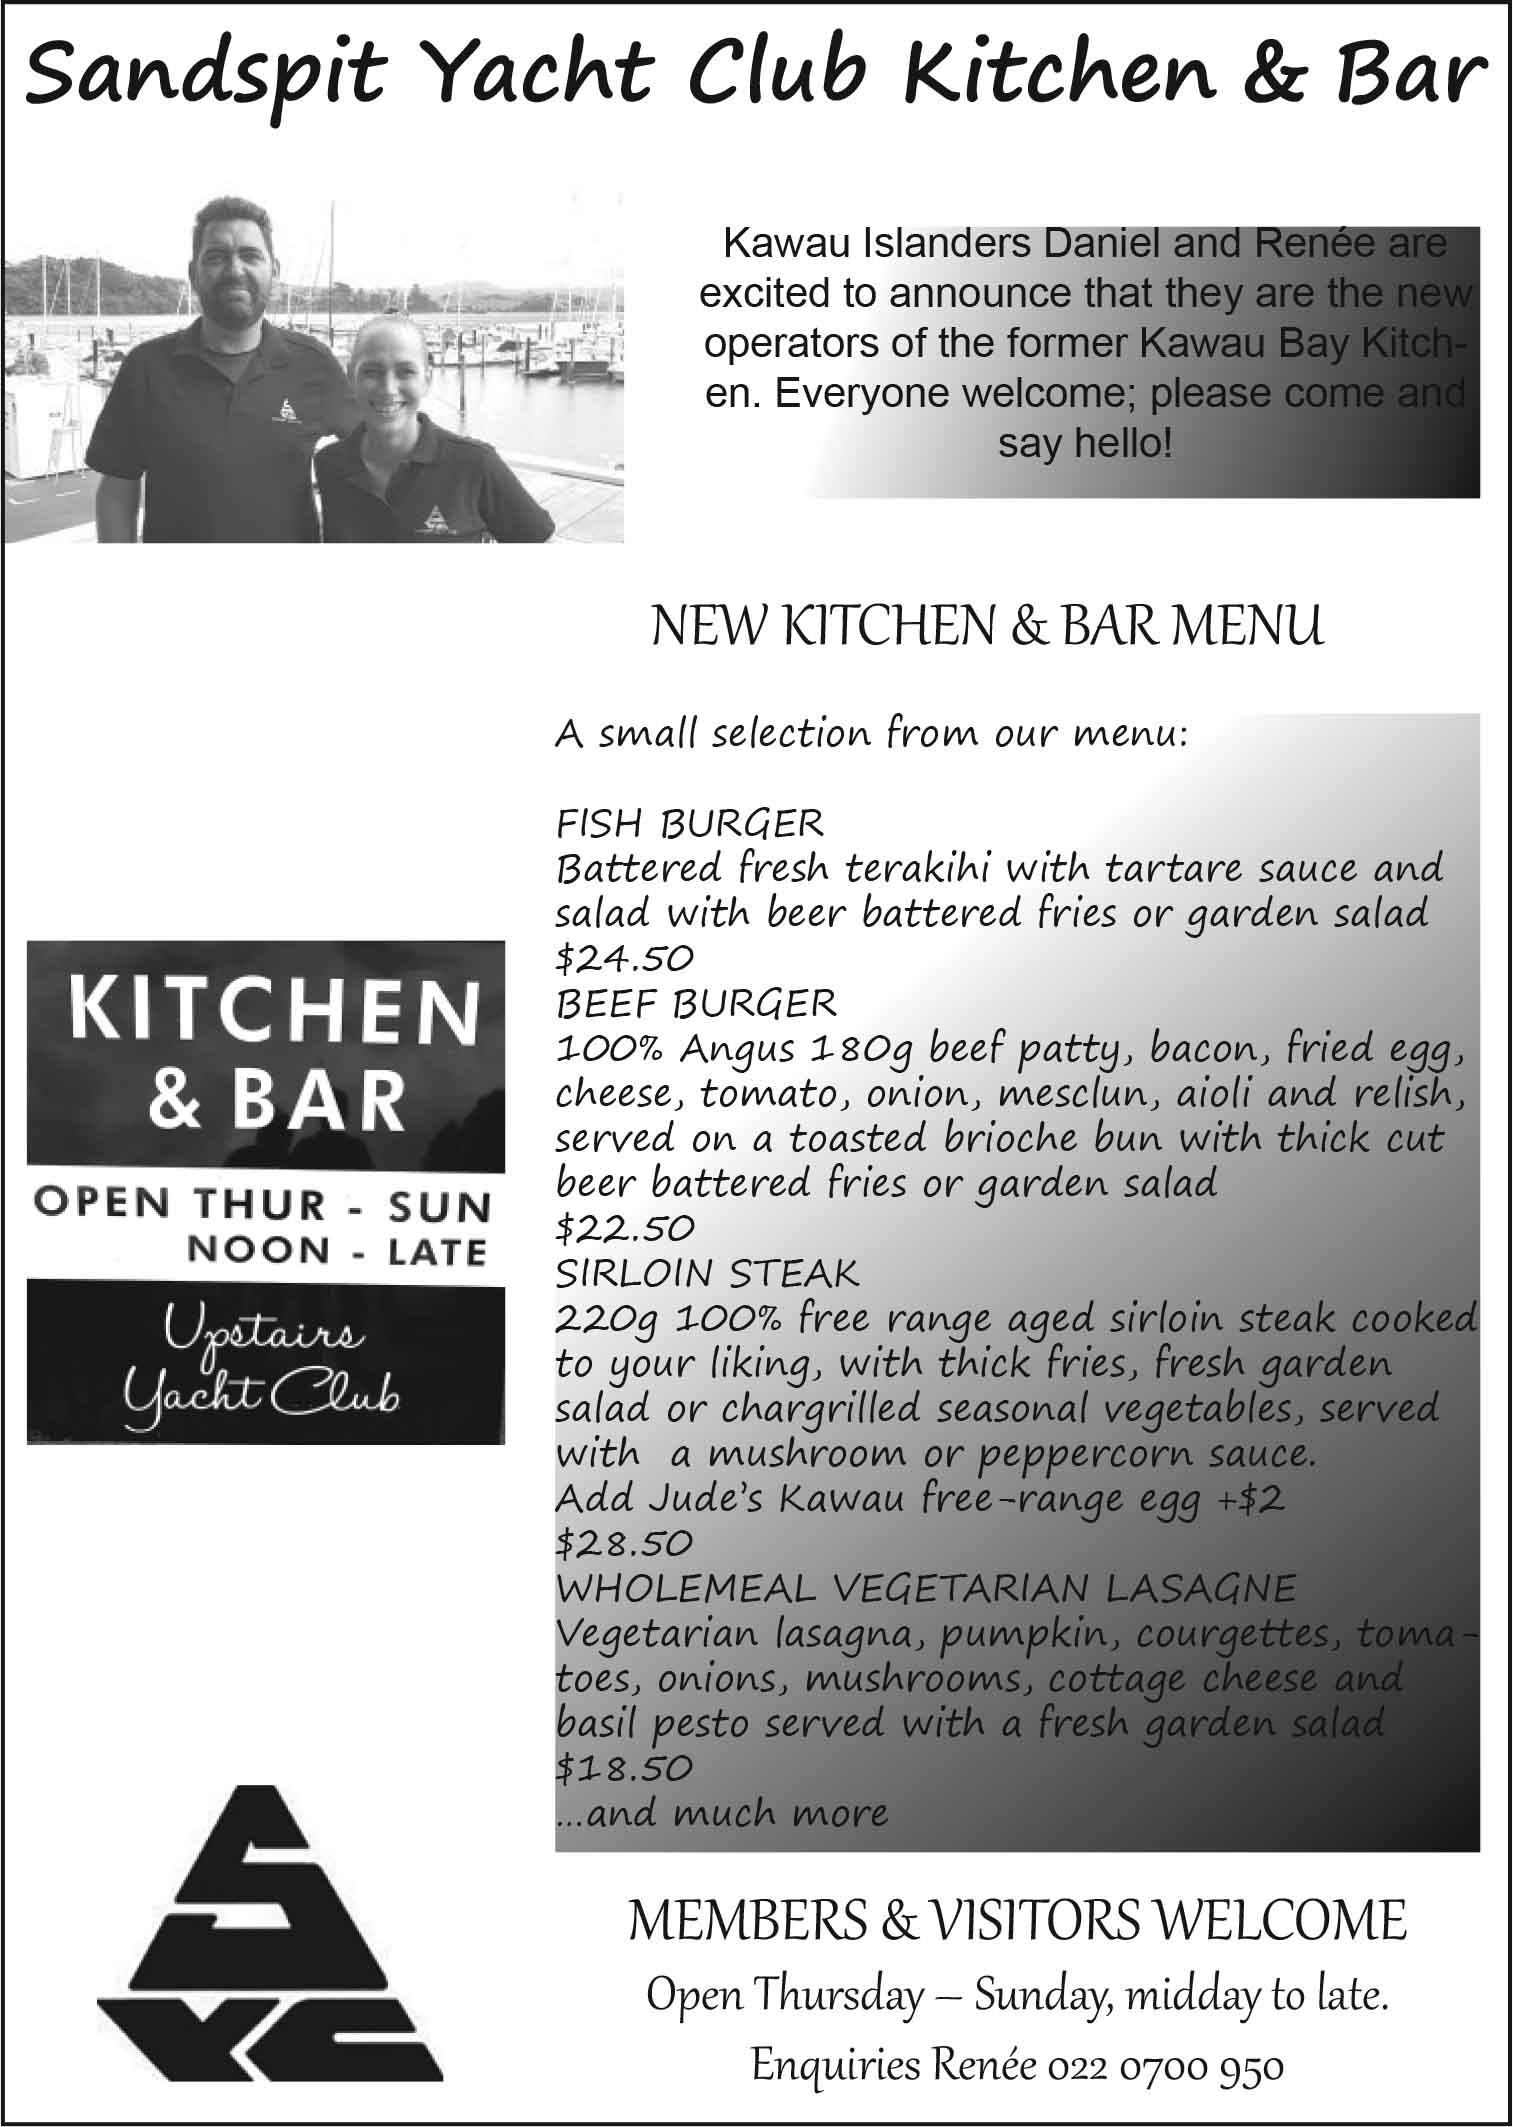 SSYC Kitchen Sum18 Website.jpg